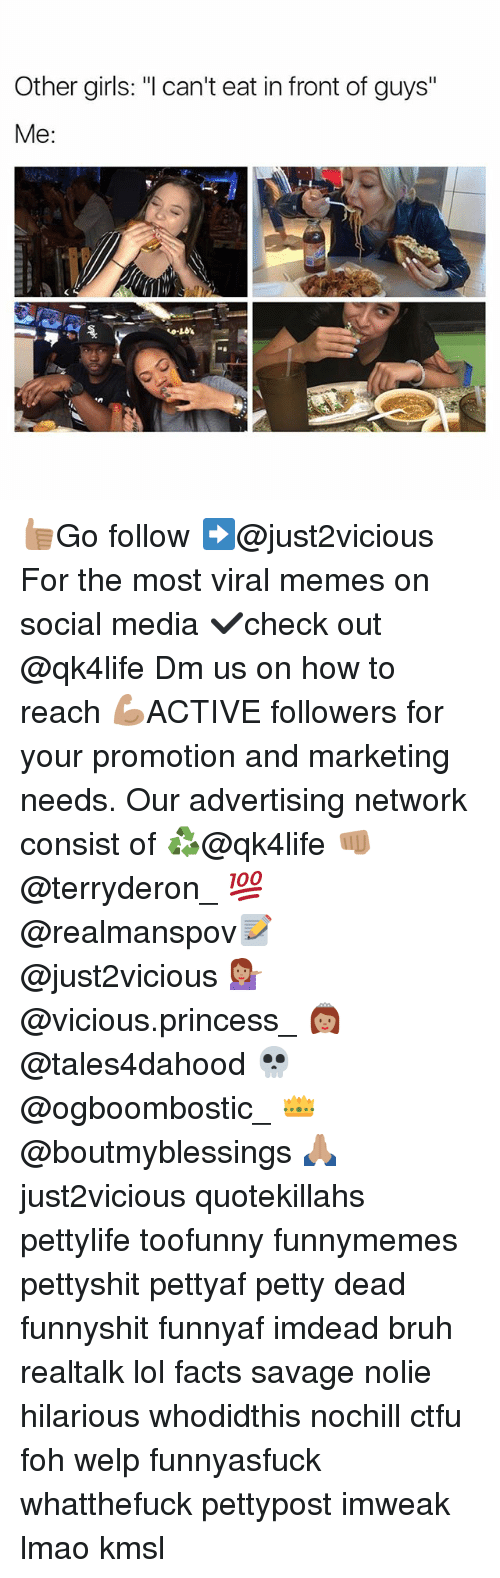 """Bruh, Ctfu, and Facts: Other girls: """"l can't eat in front of guys""""  Me  to-LO's 👍🏽Go follow ➡@just2vicious For the most viral memes on social media ✔check out @qk4life Dm us on how to reach 💪🏽ACTIVE followers for your promotion and marketing needs. Our advertising network consist of ♻@qk4life 👊🏽 @terryderon_ 💯@realmanspov📝 @just2vicious 💁🏽 @vicious.princess_ 👸🏽 @tales4dahood 💀 @ogboombostic_ 👑 @boutmyblessings 🙏🏽 just2vicious quotekillahs pettylife toofunny funnymemes pettyshit pettyaf petty dead funnyshit funnyaf imdead bruh realtalk lol facts savage nolie hilarious whodidthis nochill ctfu foh welp funnyasfuck whatthefuck pettypost imweak lmao kmsl"""